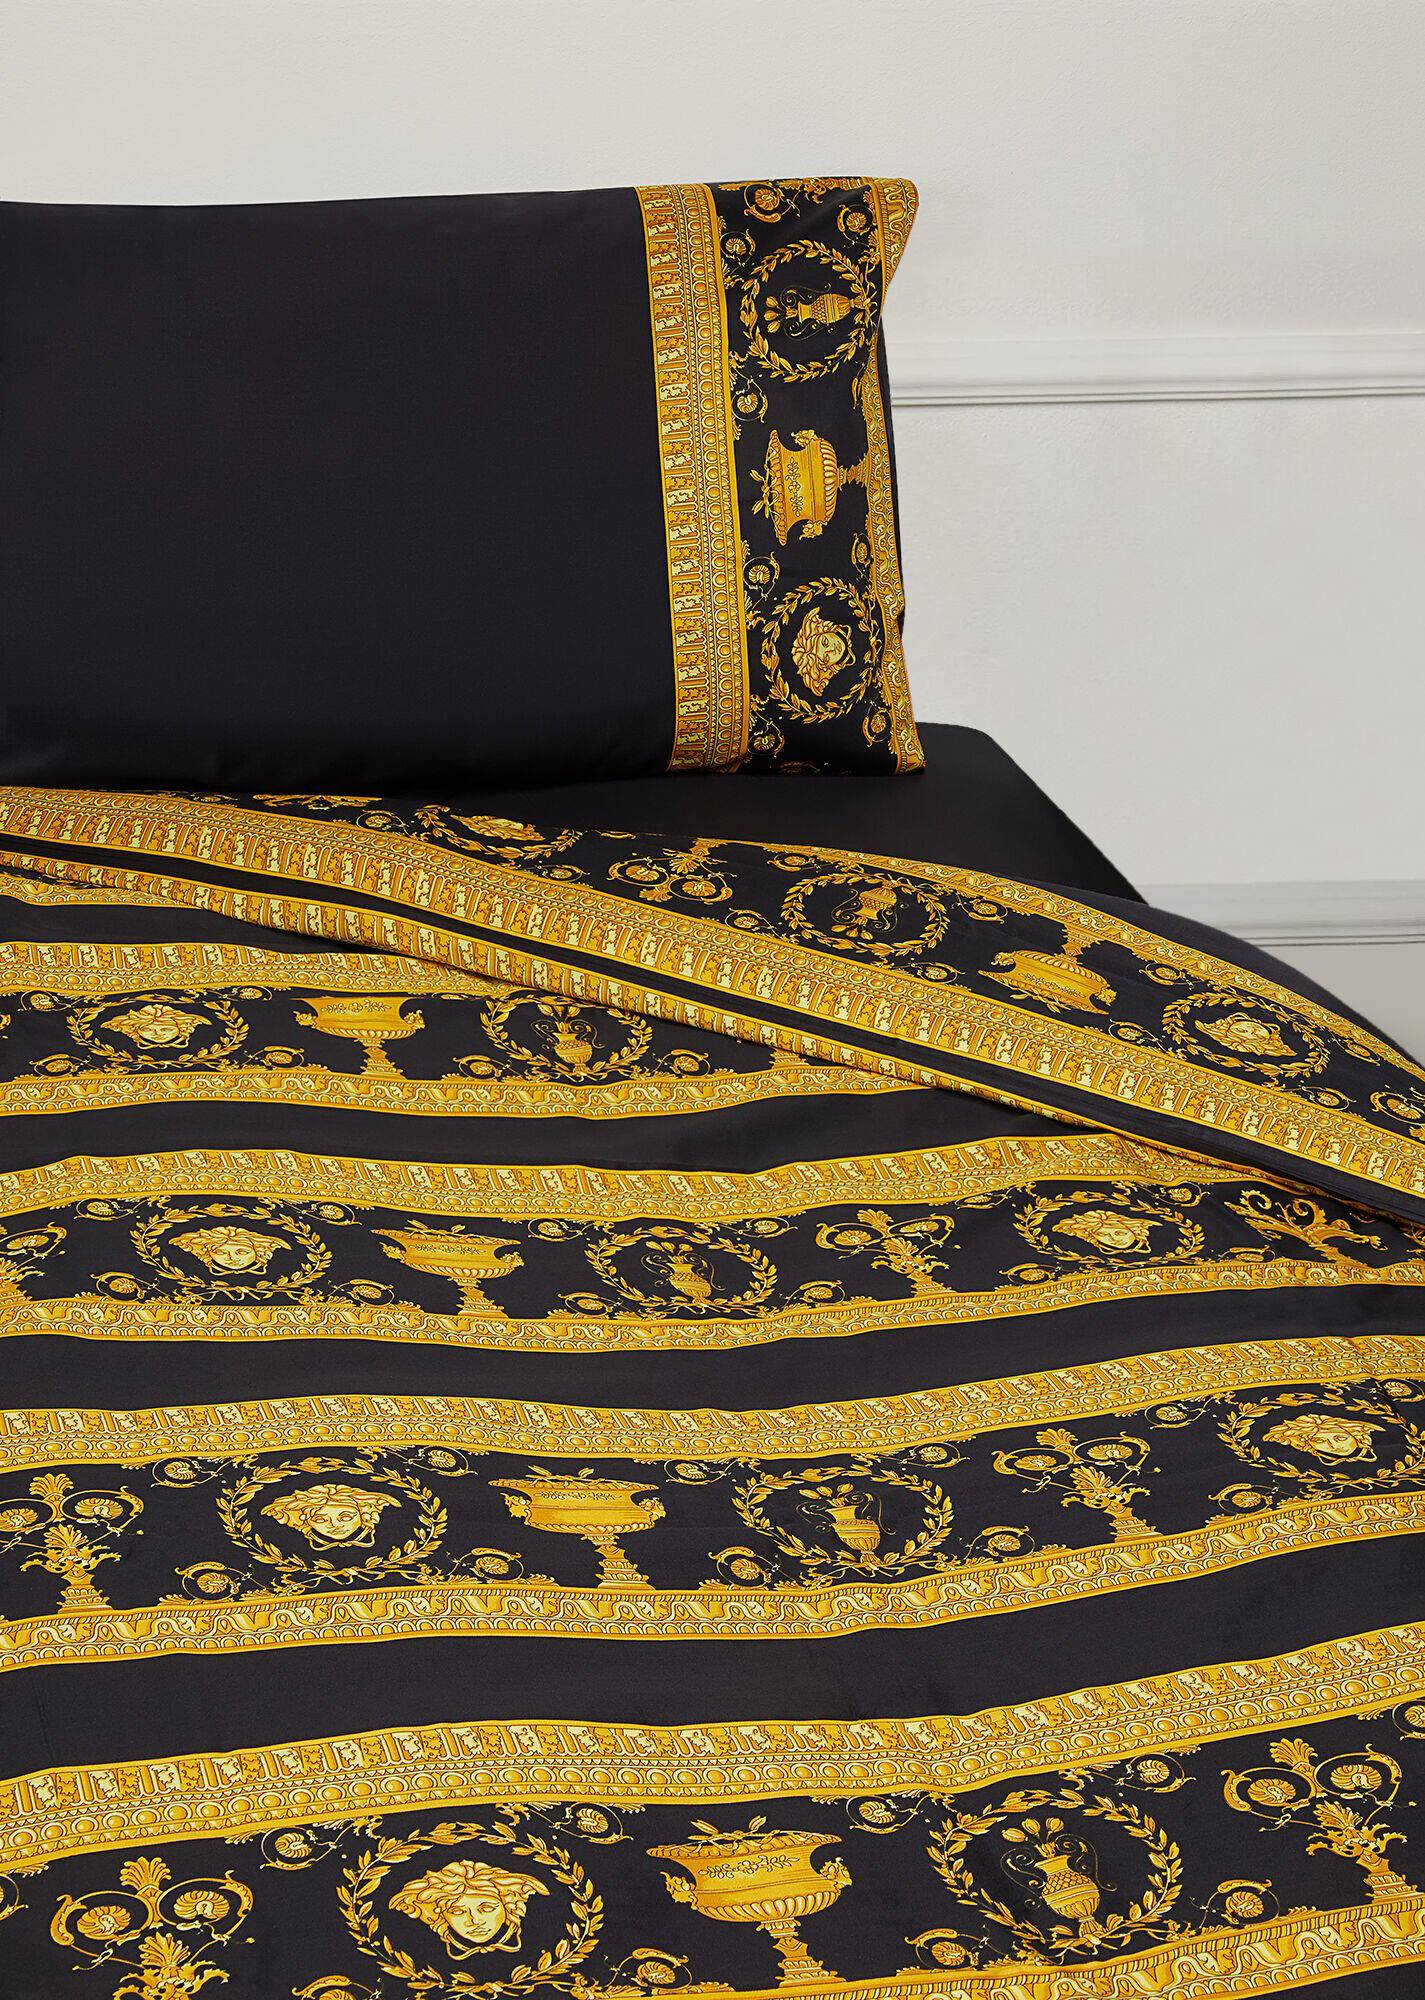 Gold and black bed sheets and pillow case